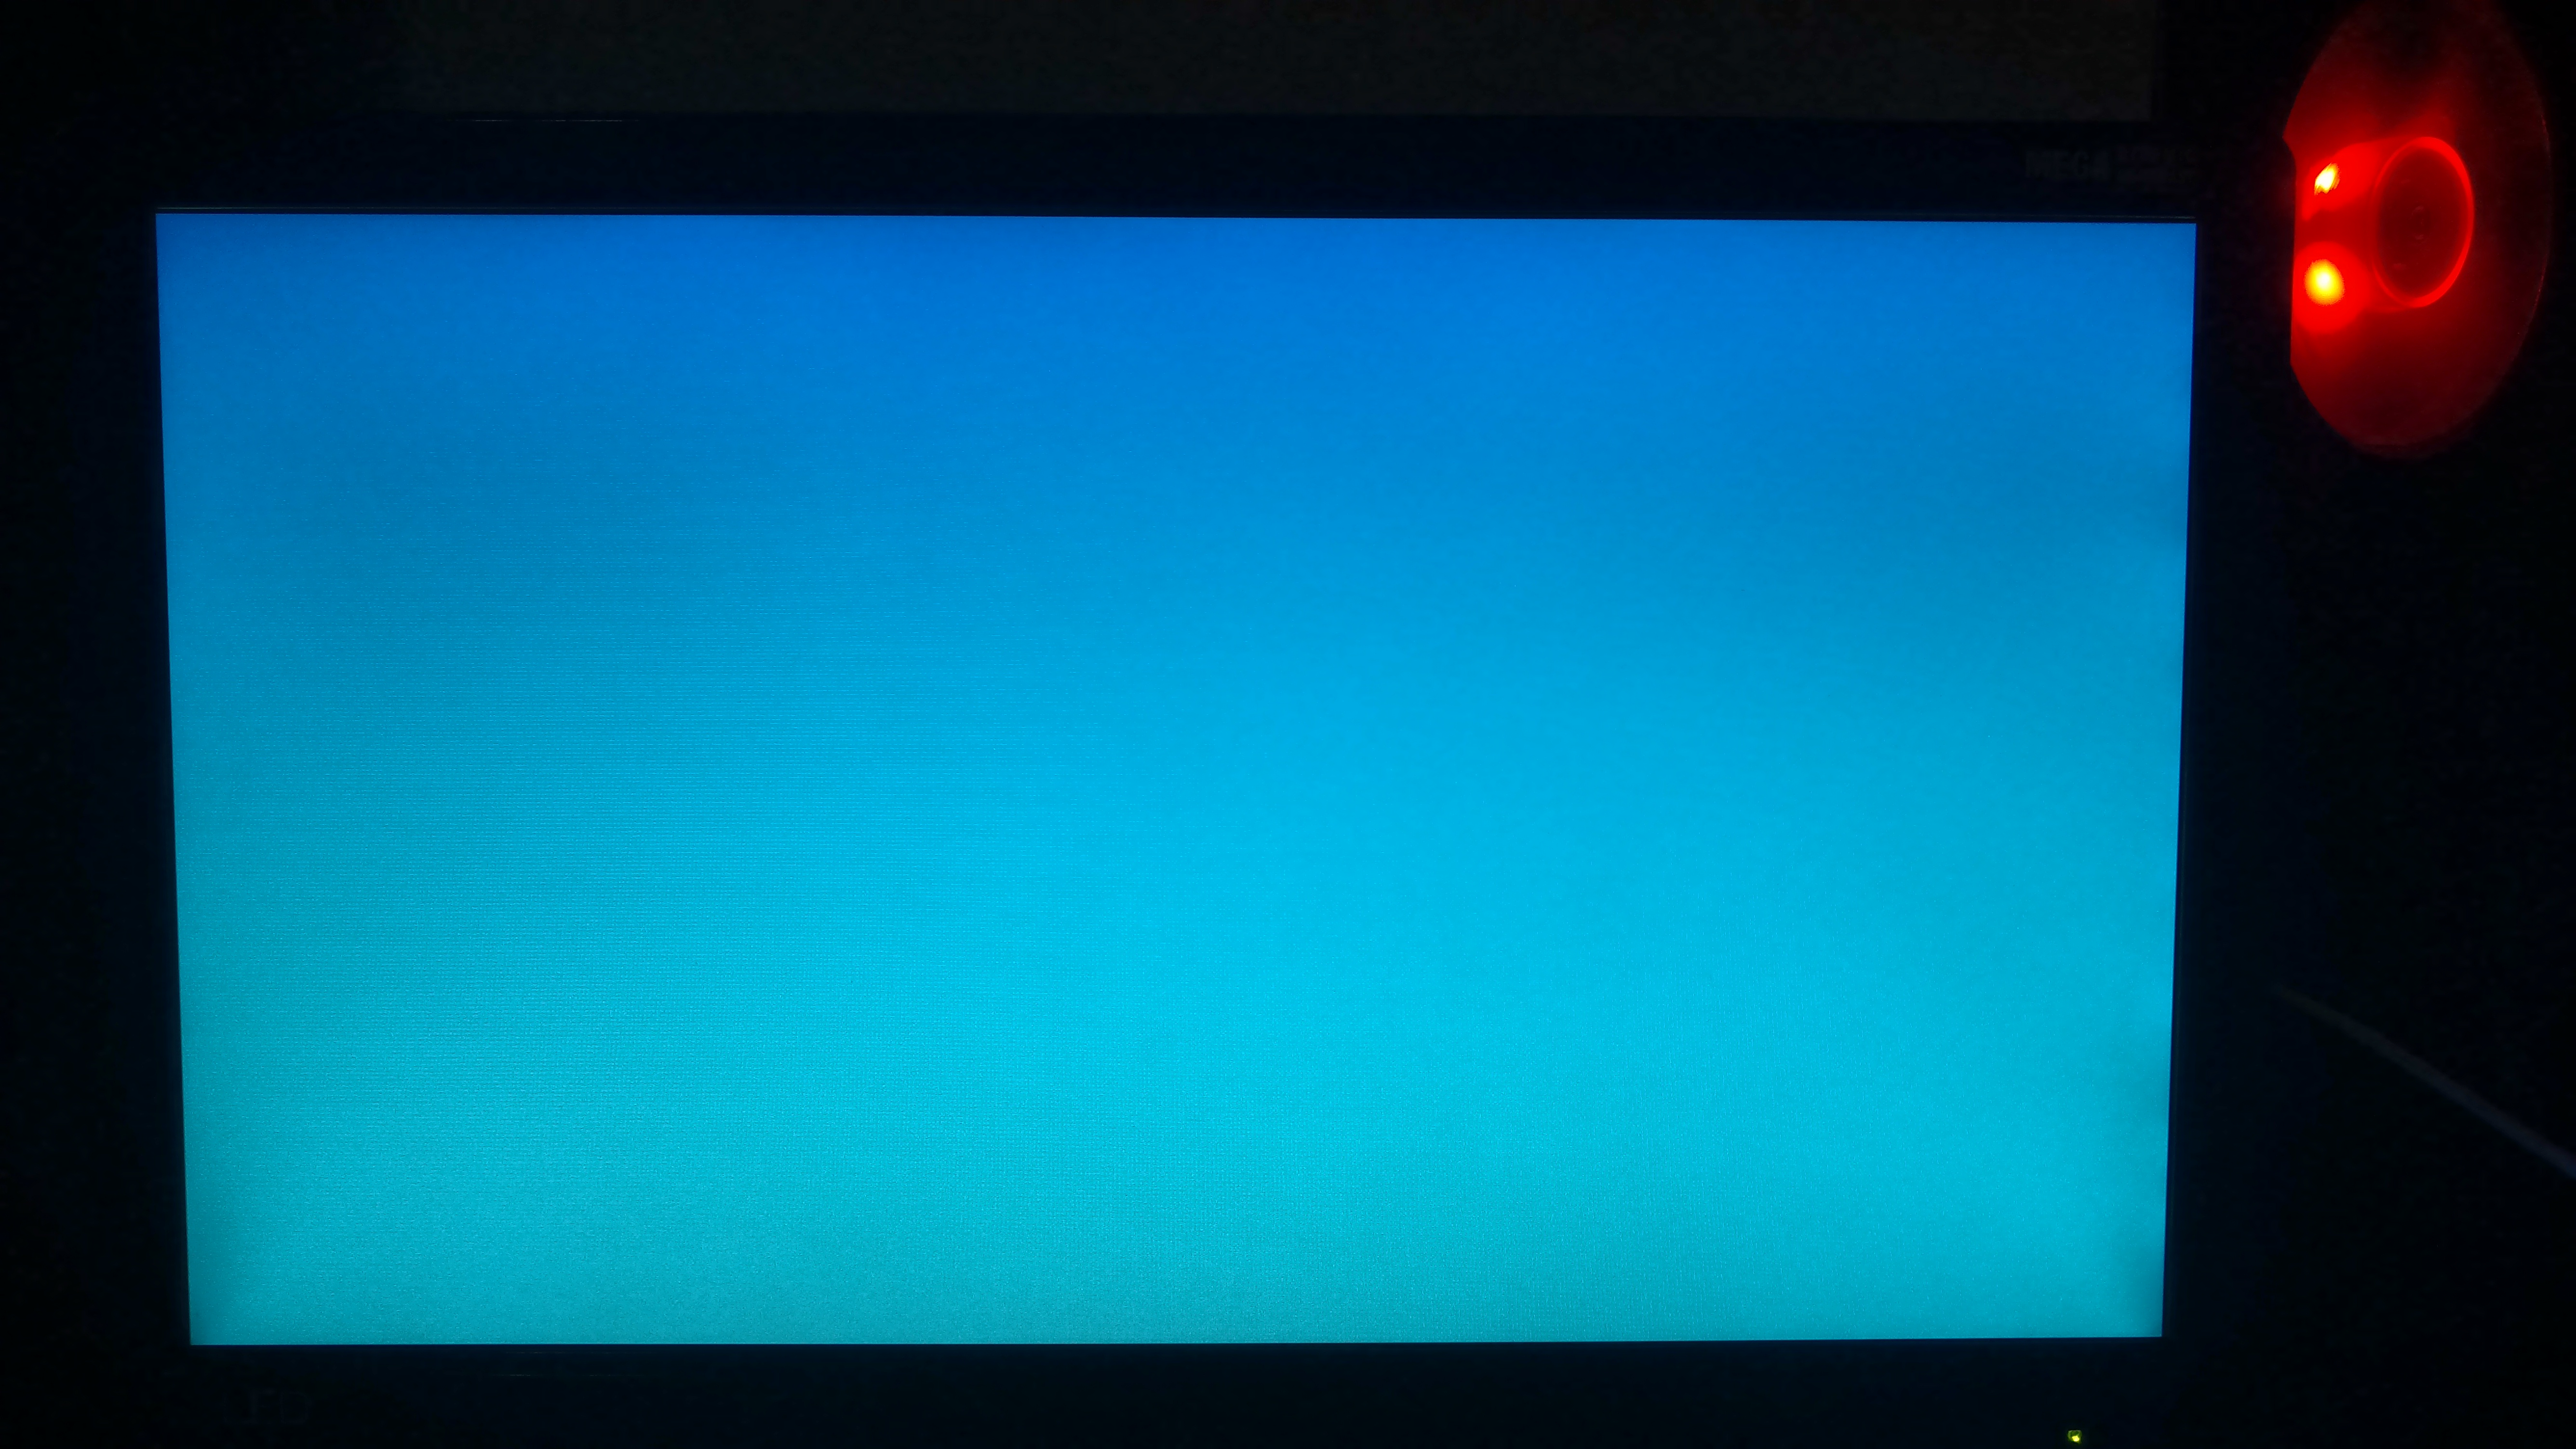 Blue screen of Death :( - Troubleshooting - Linus Tech Tips